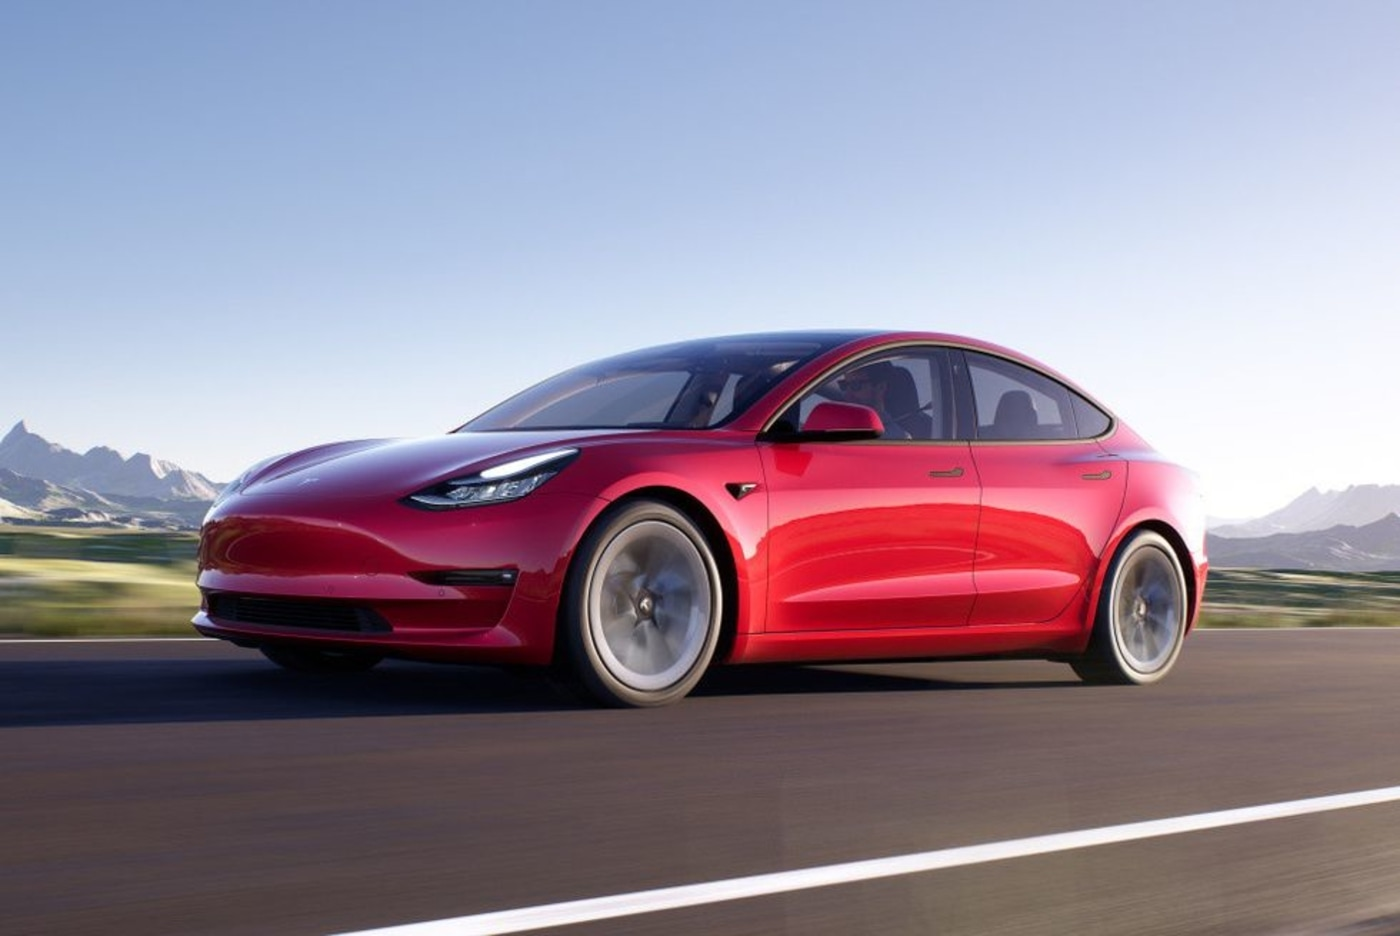 Tesla Model 3 Production Temporarily Halted Due To Supply Chain Issues - GaadiWaadi.com